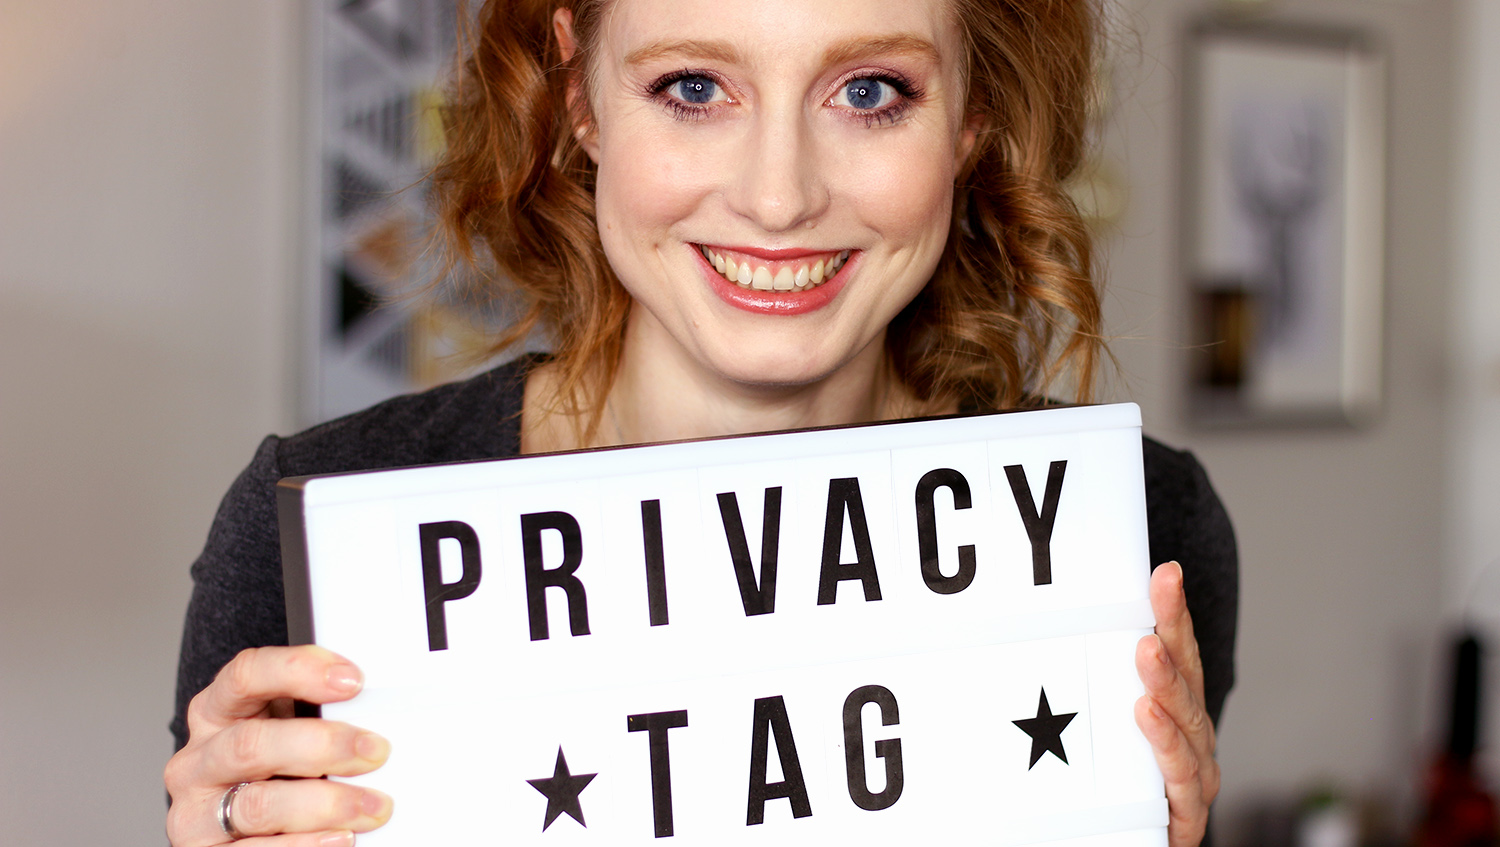 Privacy Tag, Youtube, Tag, Small Youtuber, Fragen, persönliche Fragen, Lifestyleblog, Berlin, Influencer, Advanceyourstyle, Titelbild, Leuchttafel